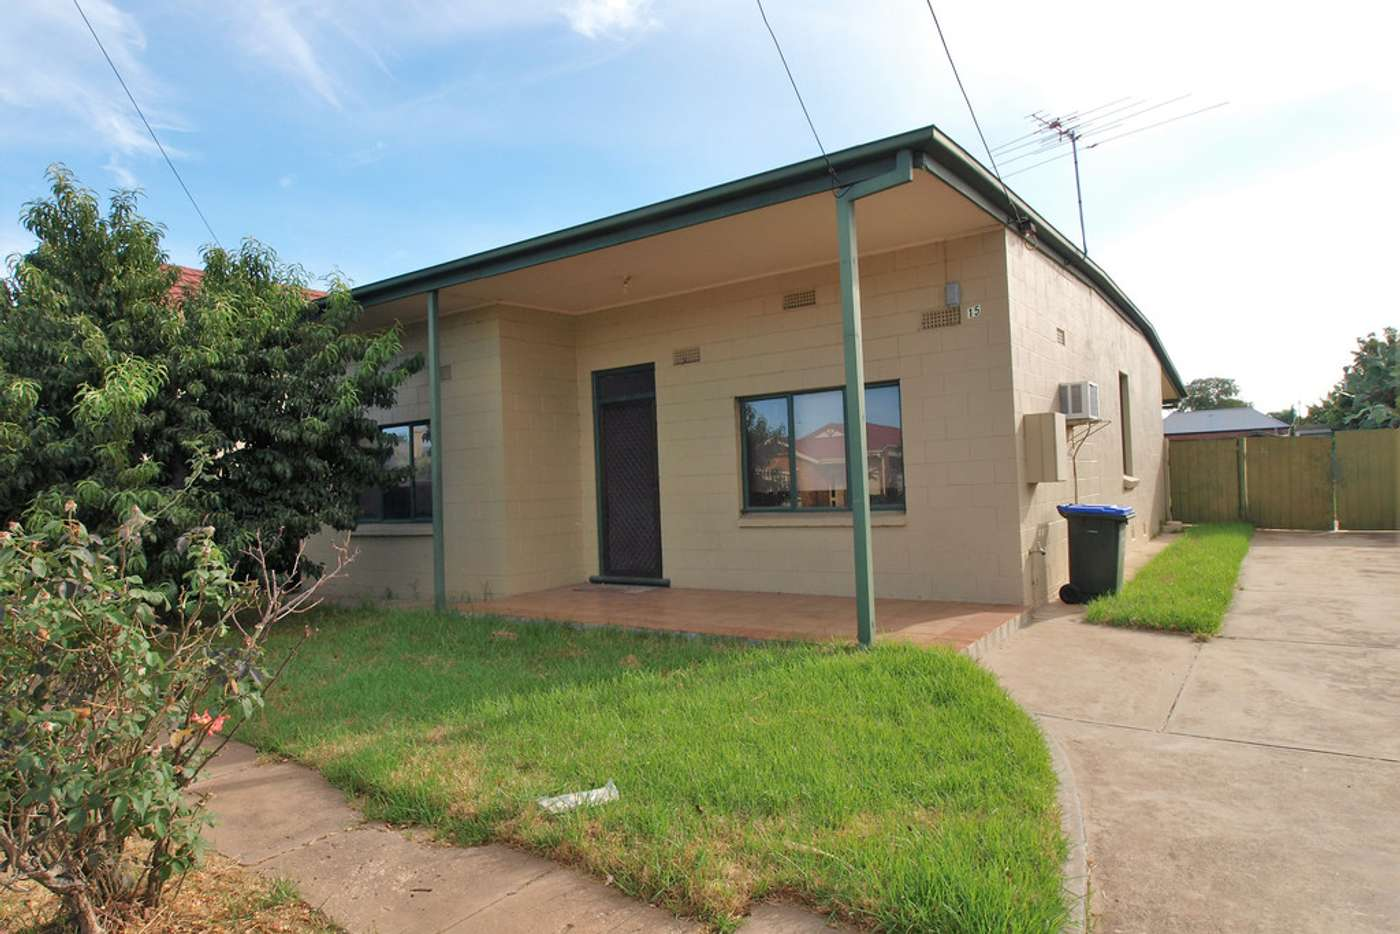 Main view of Homely house listing, 15 Cator Street, West Hindmarsh SA 5007